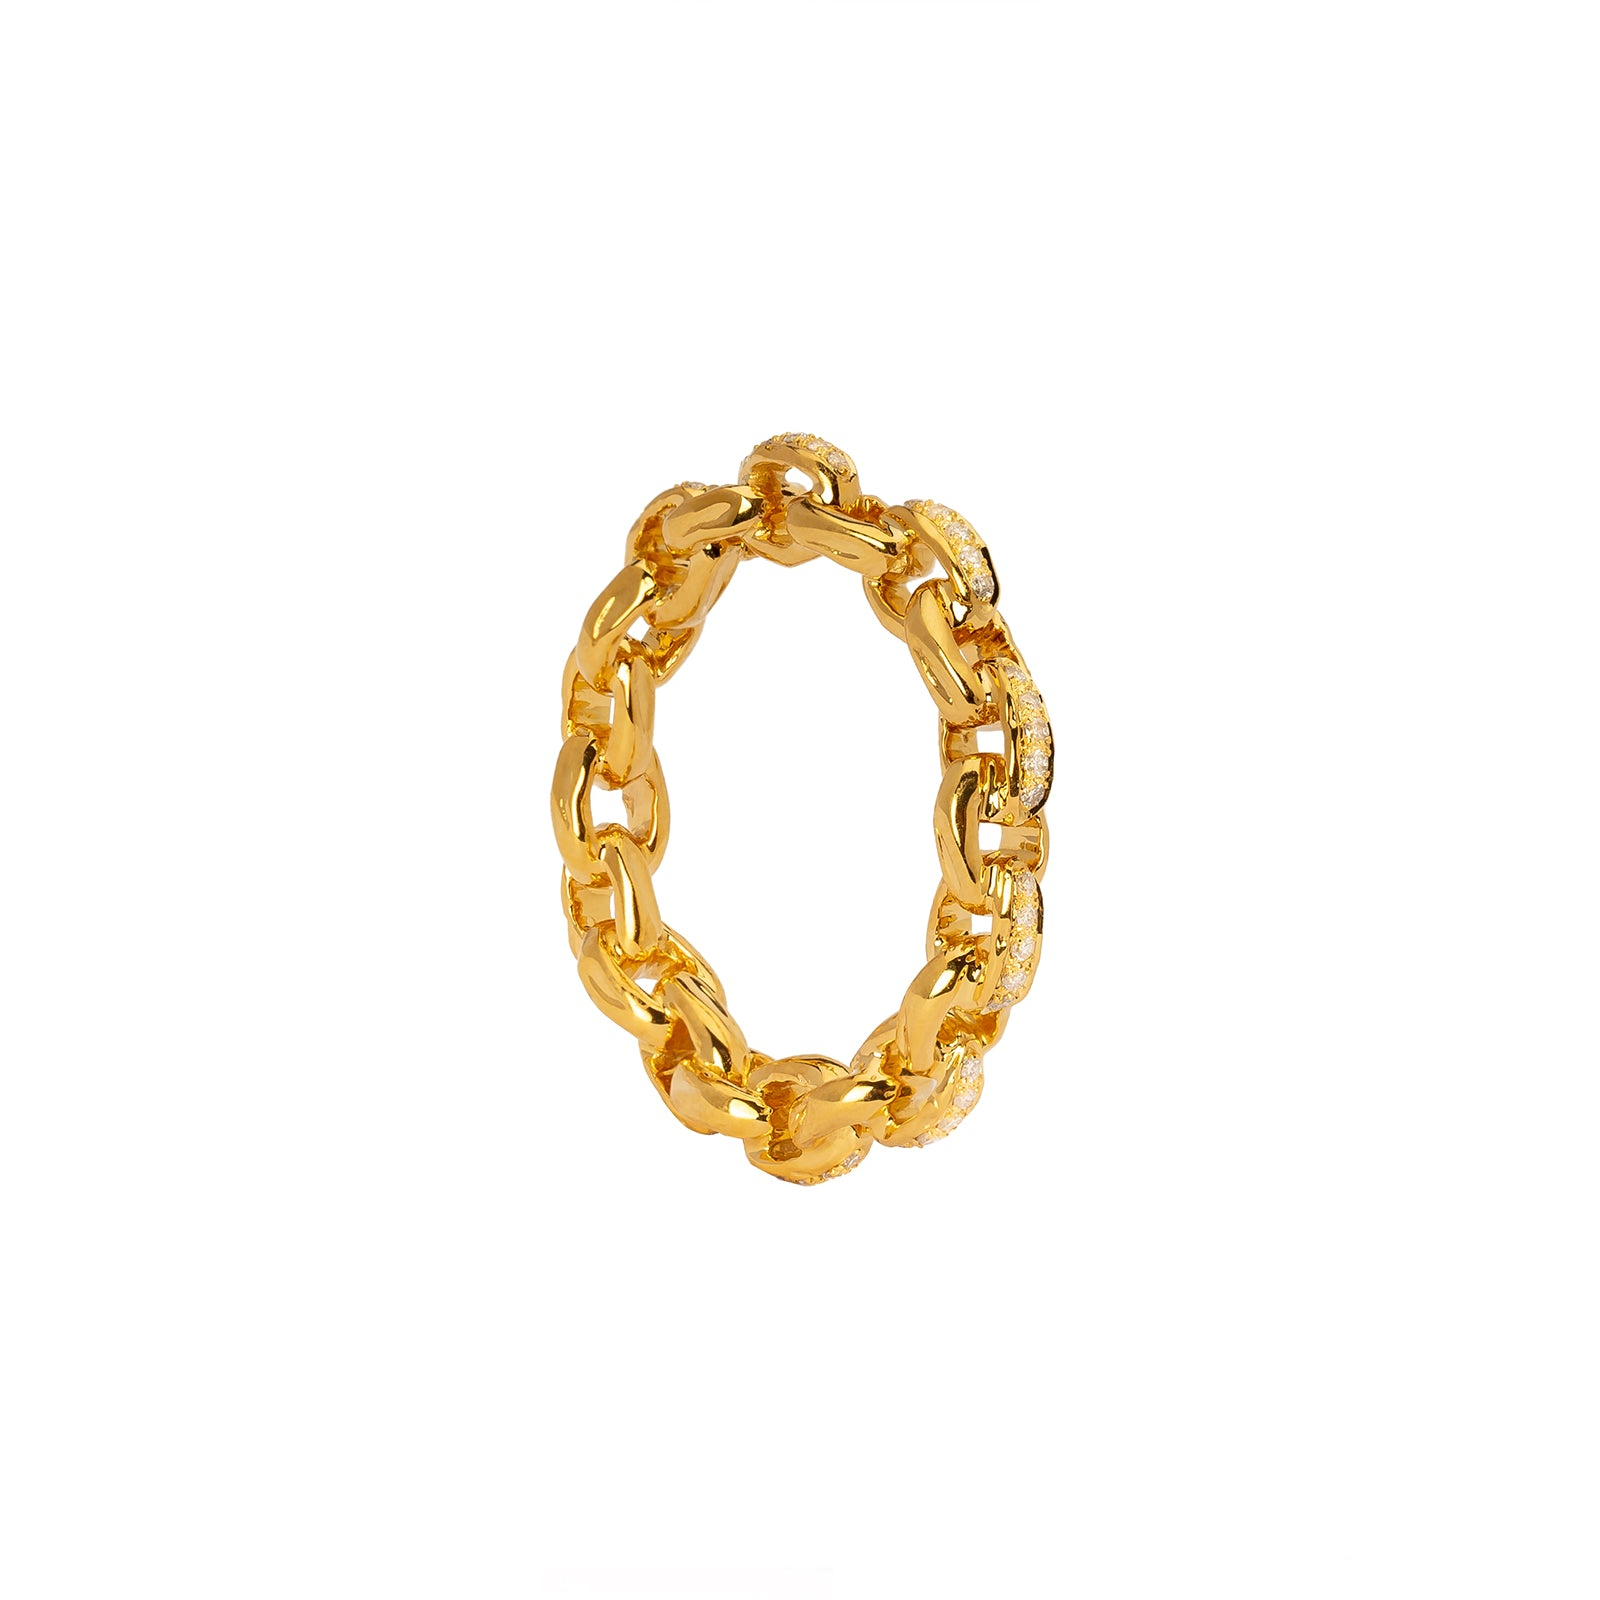 Patcharavipa Diamond Chain Row Ring - Yellow Gold - Rings - Broken English Jewelry